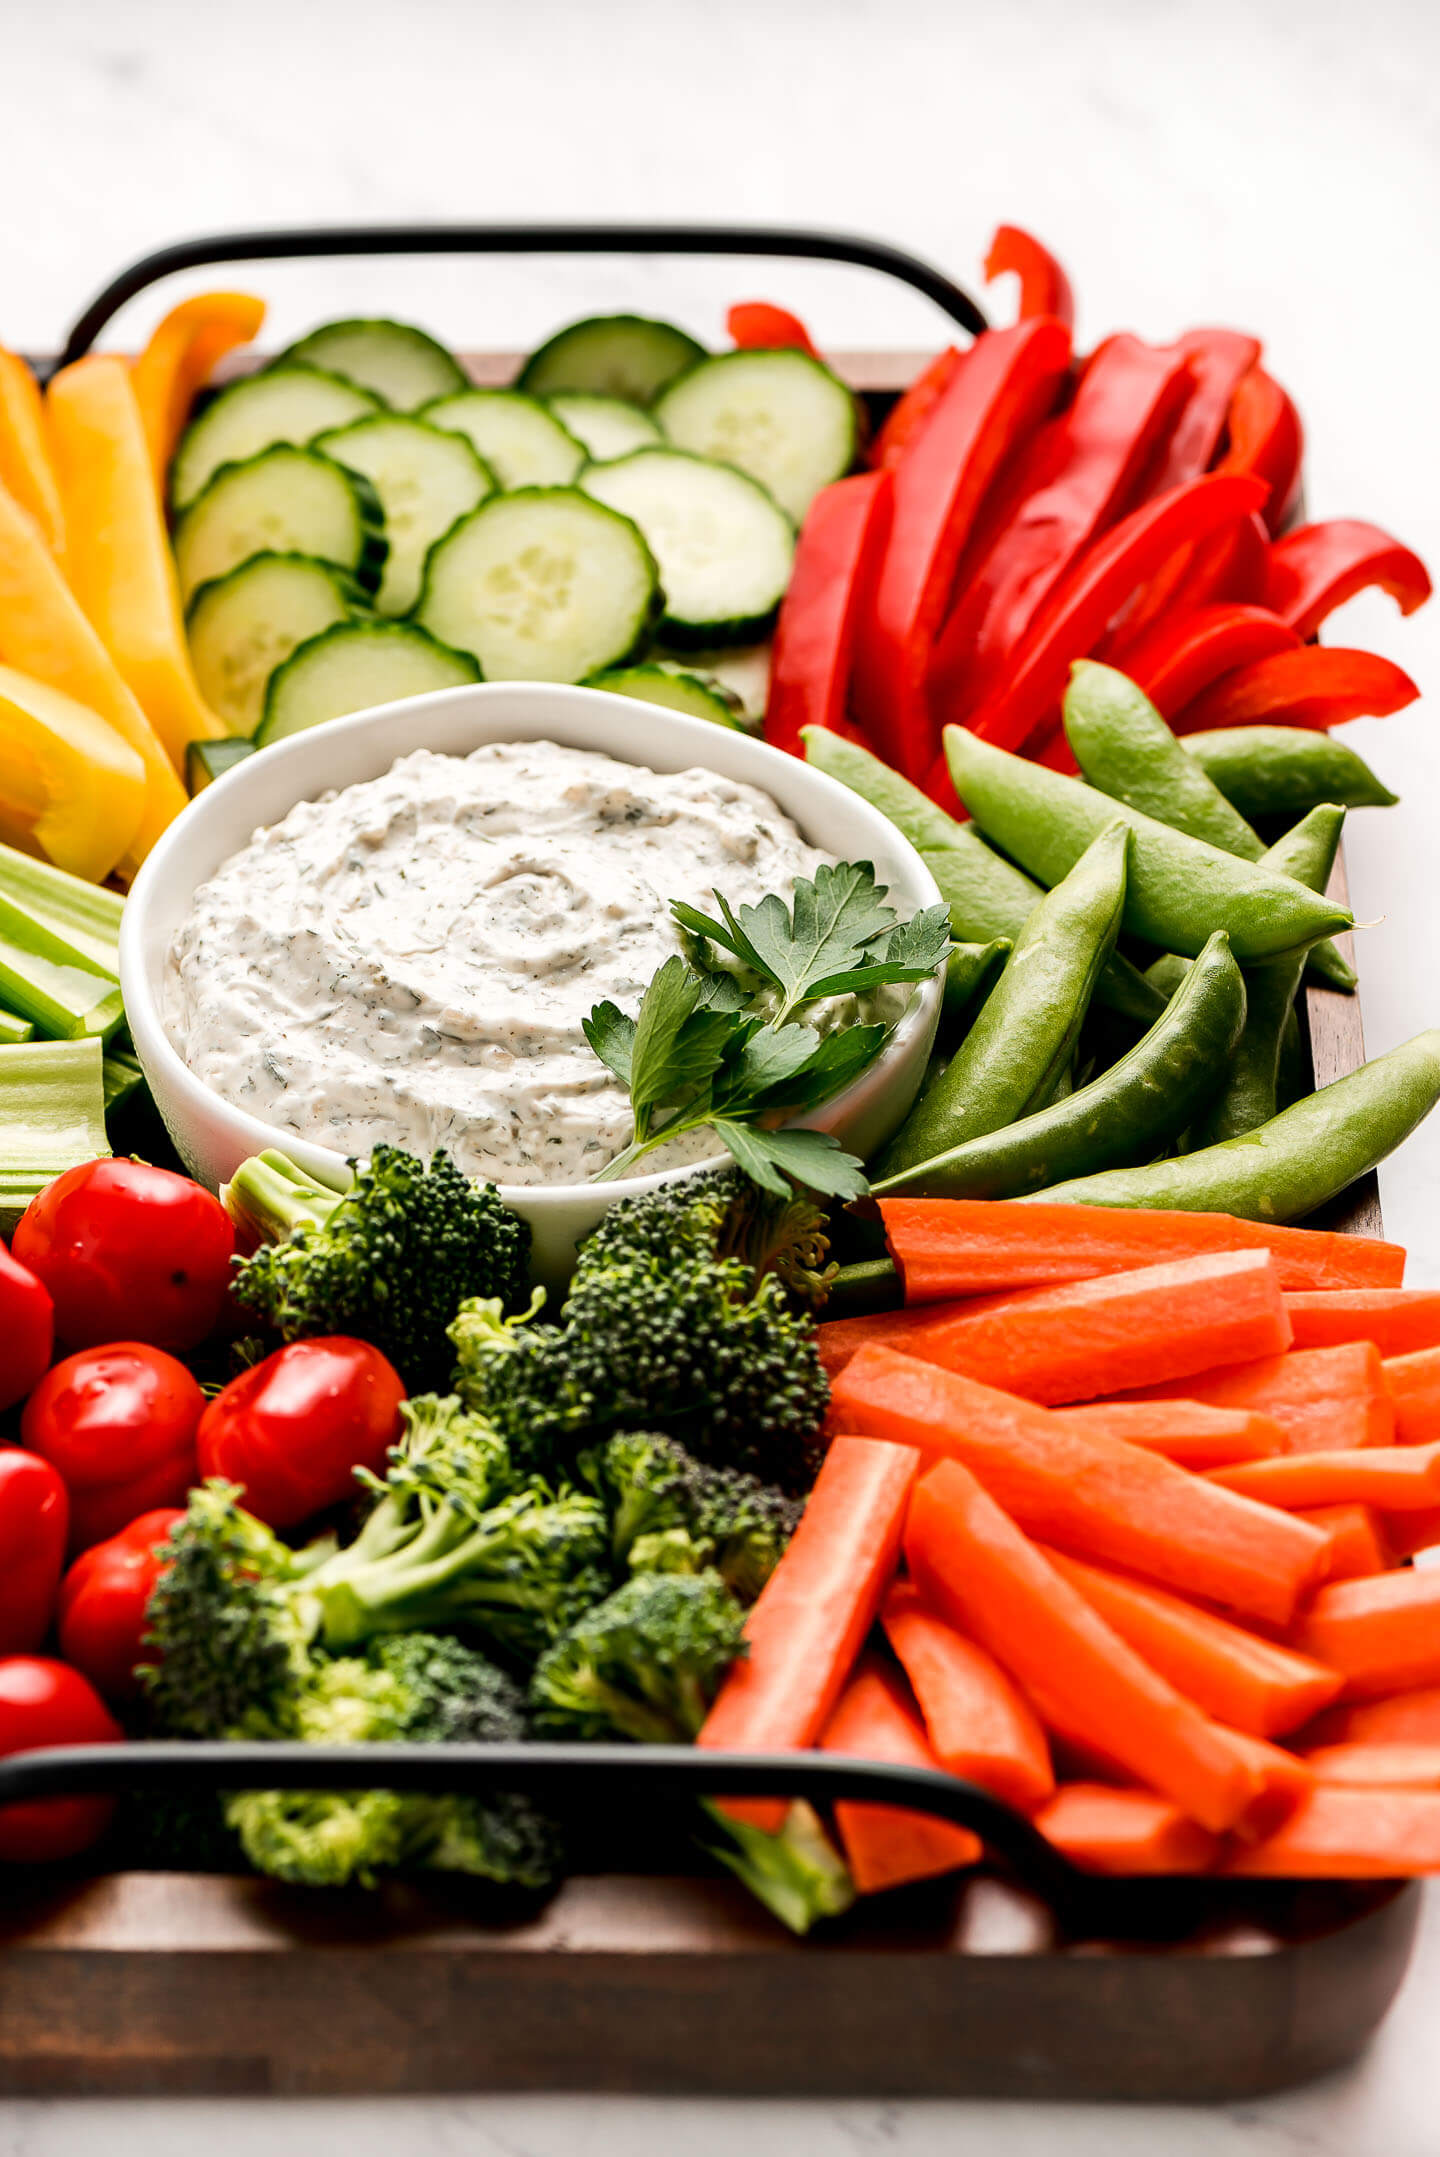 A platter of fresh vegetables and a bowl of Veggie Dip.